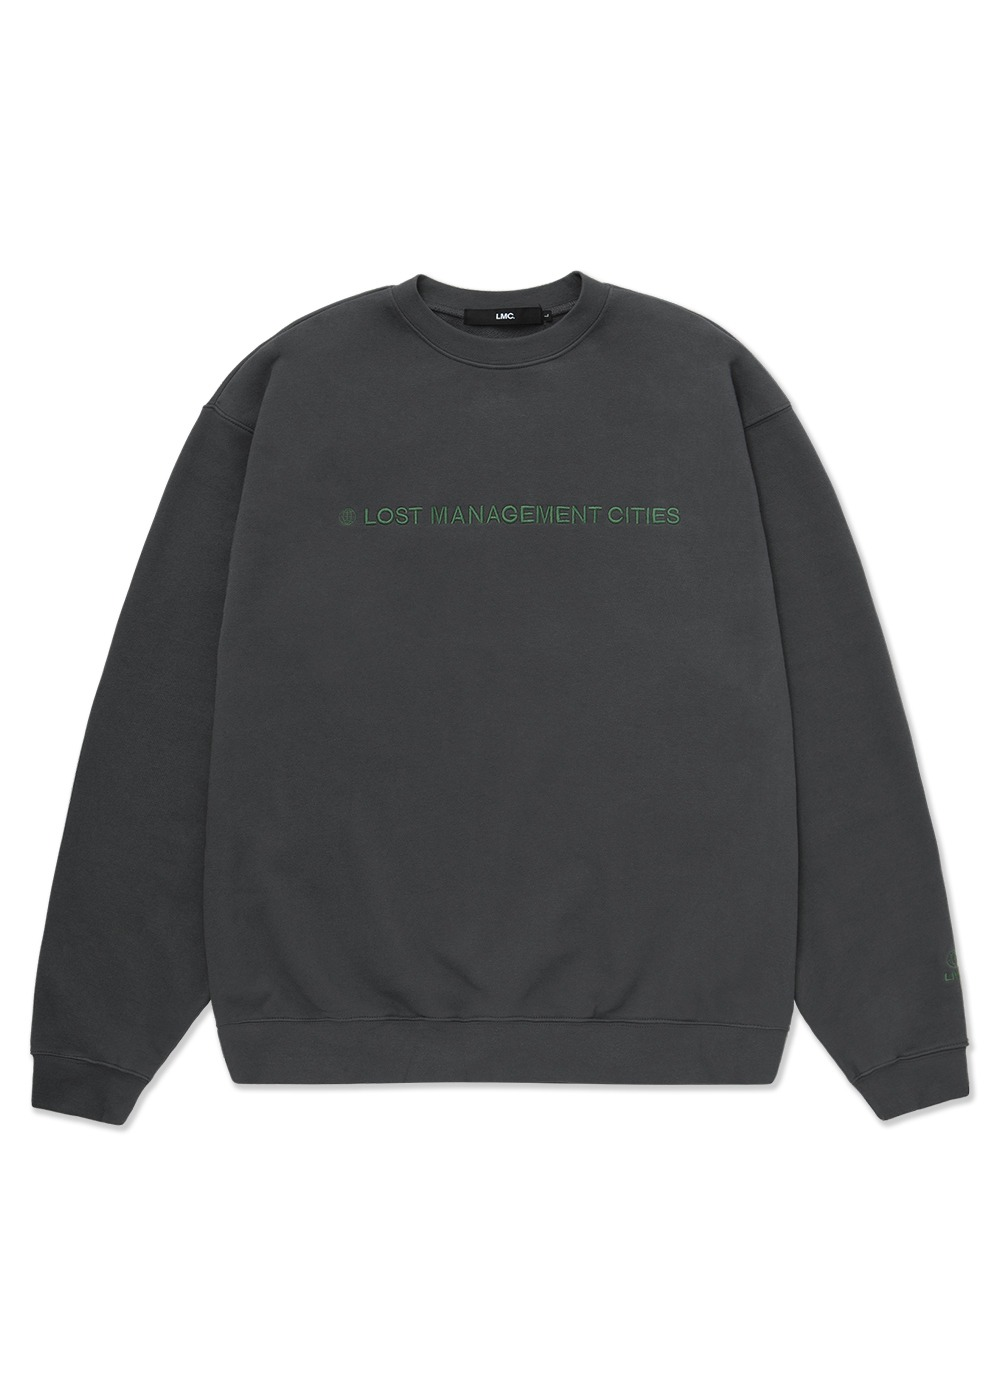 LMC CAPITAL LOGO SWEATSHIRT charcoal